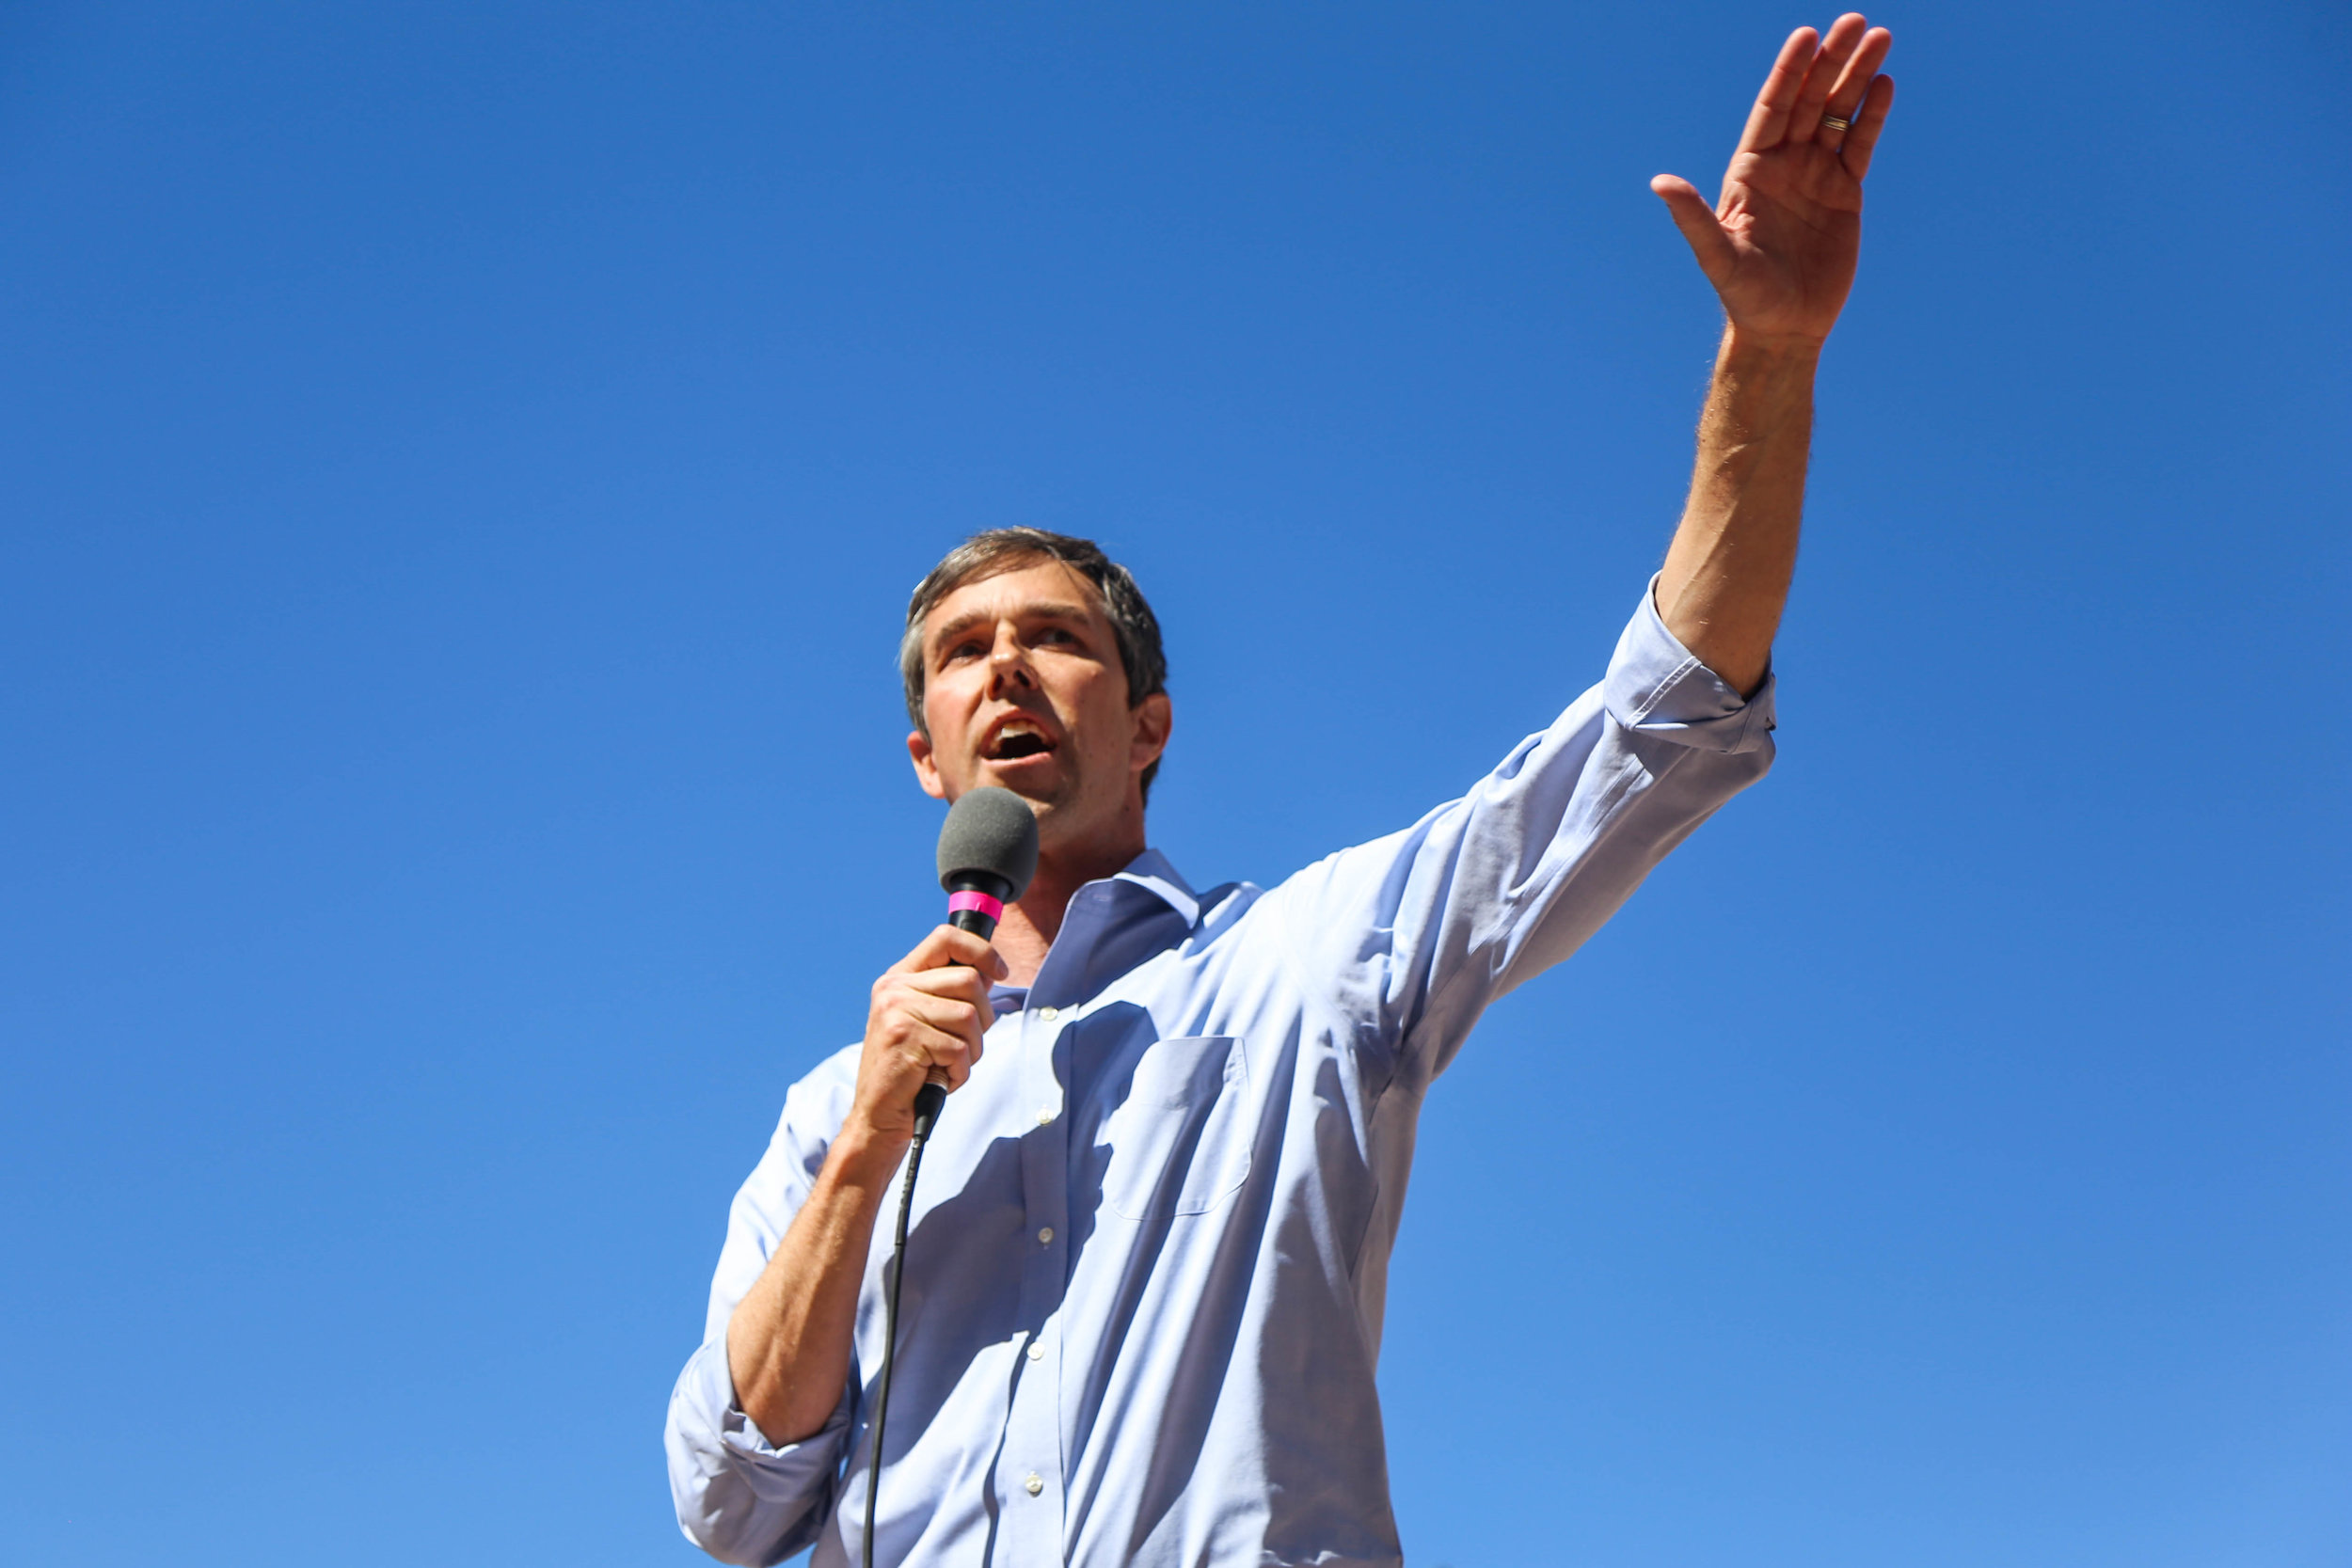 U.S. Representative Beto O'Rourke speaks at a town hall in his hometown of El Paso, Texas at San Jacinto Plaza before walking to the courthouse to vote on the last day of primary early voting, Friday, March 2, 2018.